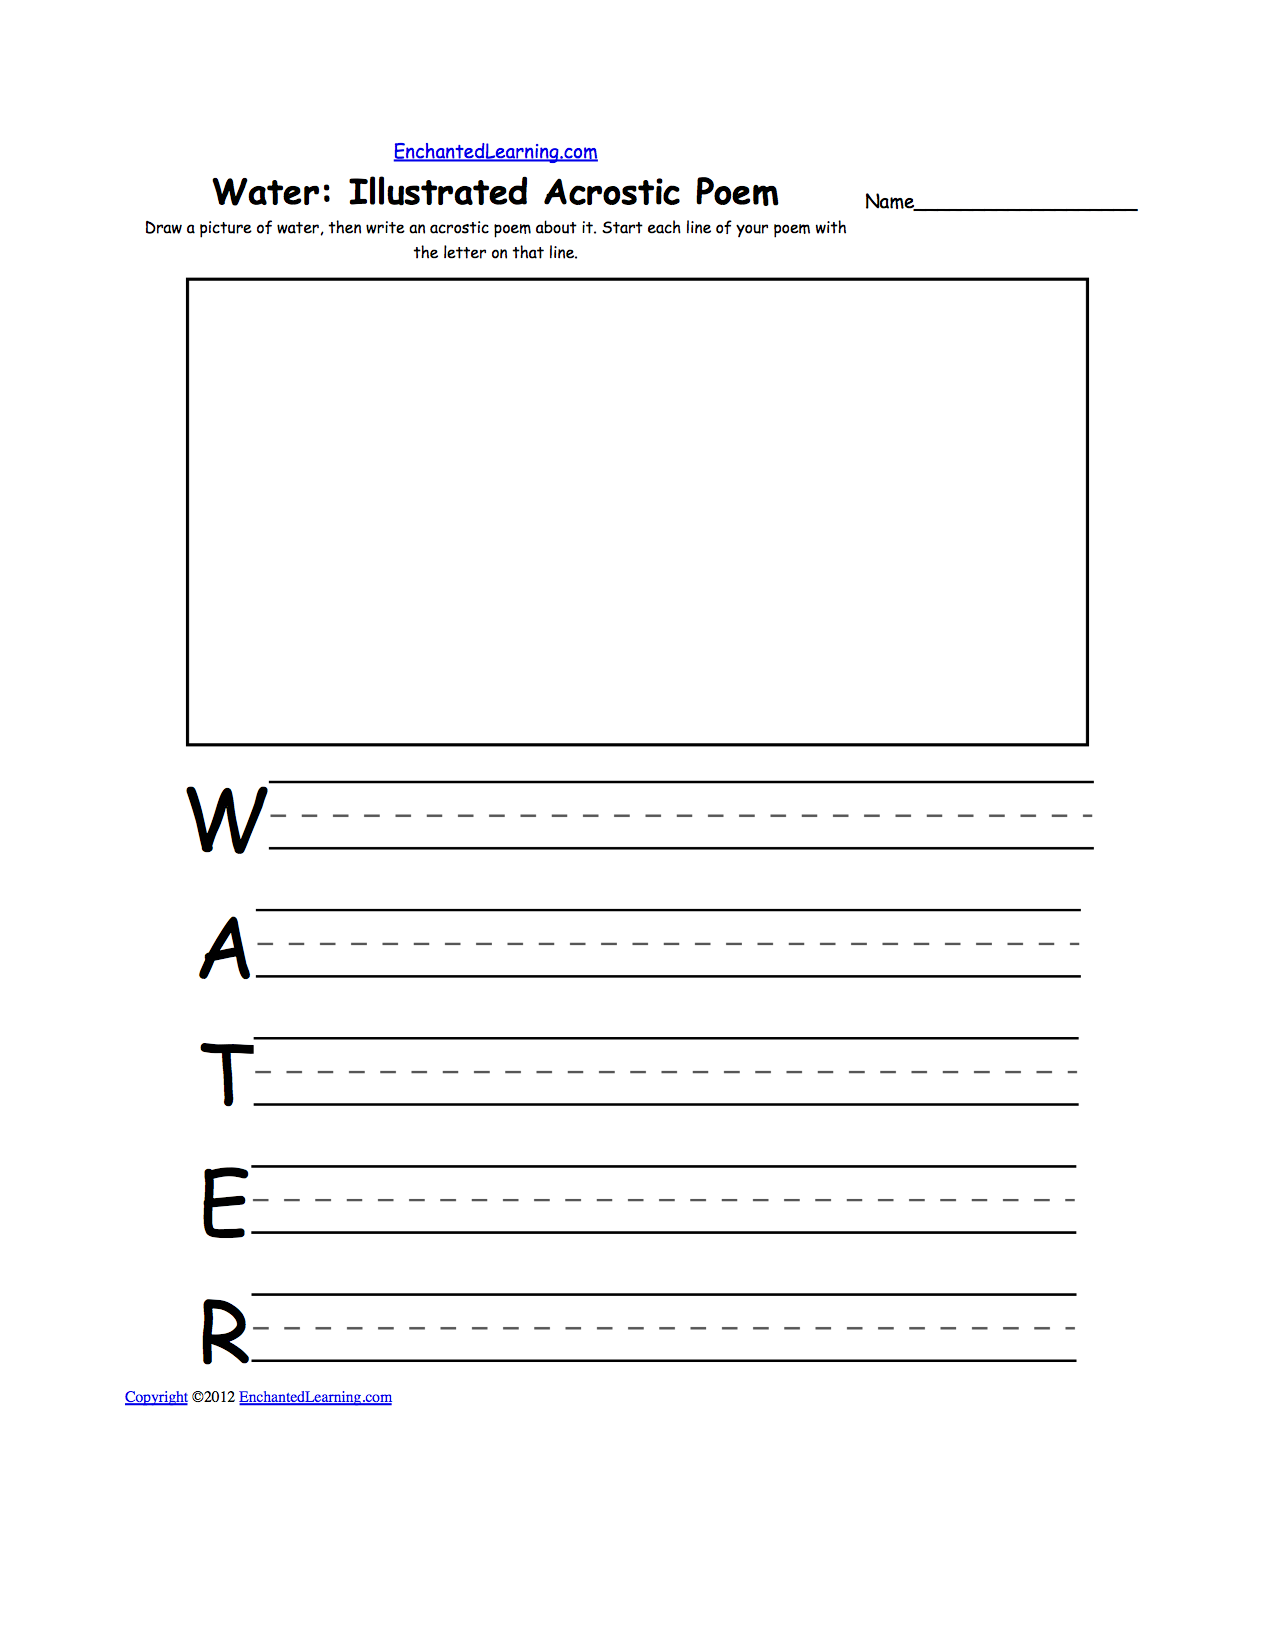 Worksheets Water Poems That Rhyme water related activities at enchantedlearning com draw a picture of then write an acrostic poem about it start each line your with the letter on that line